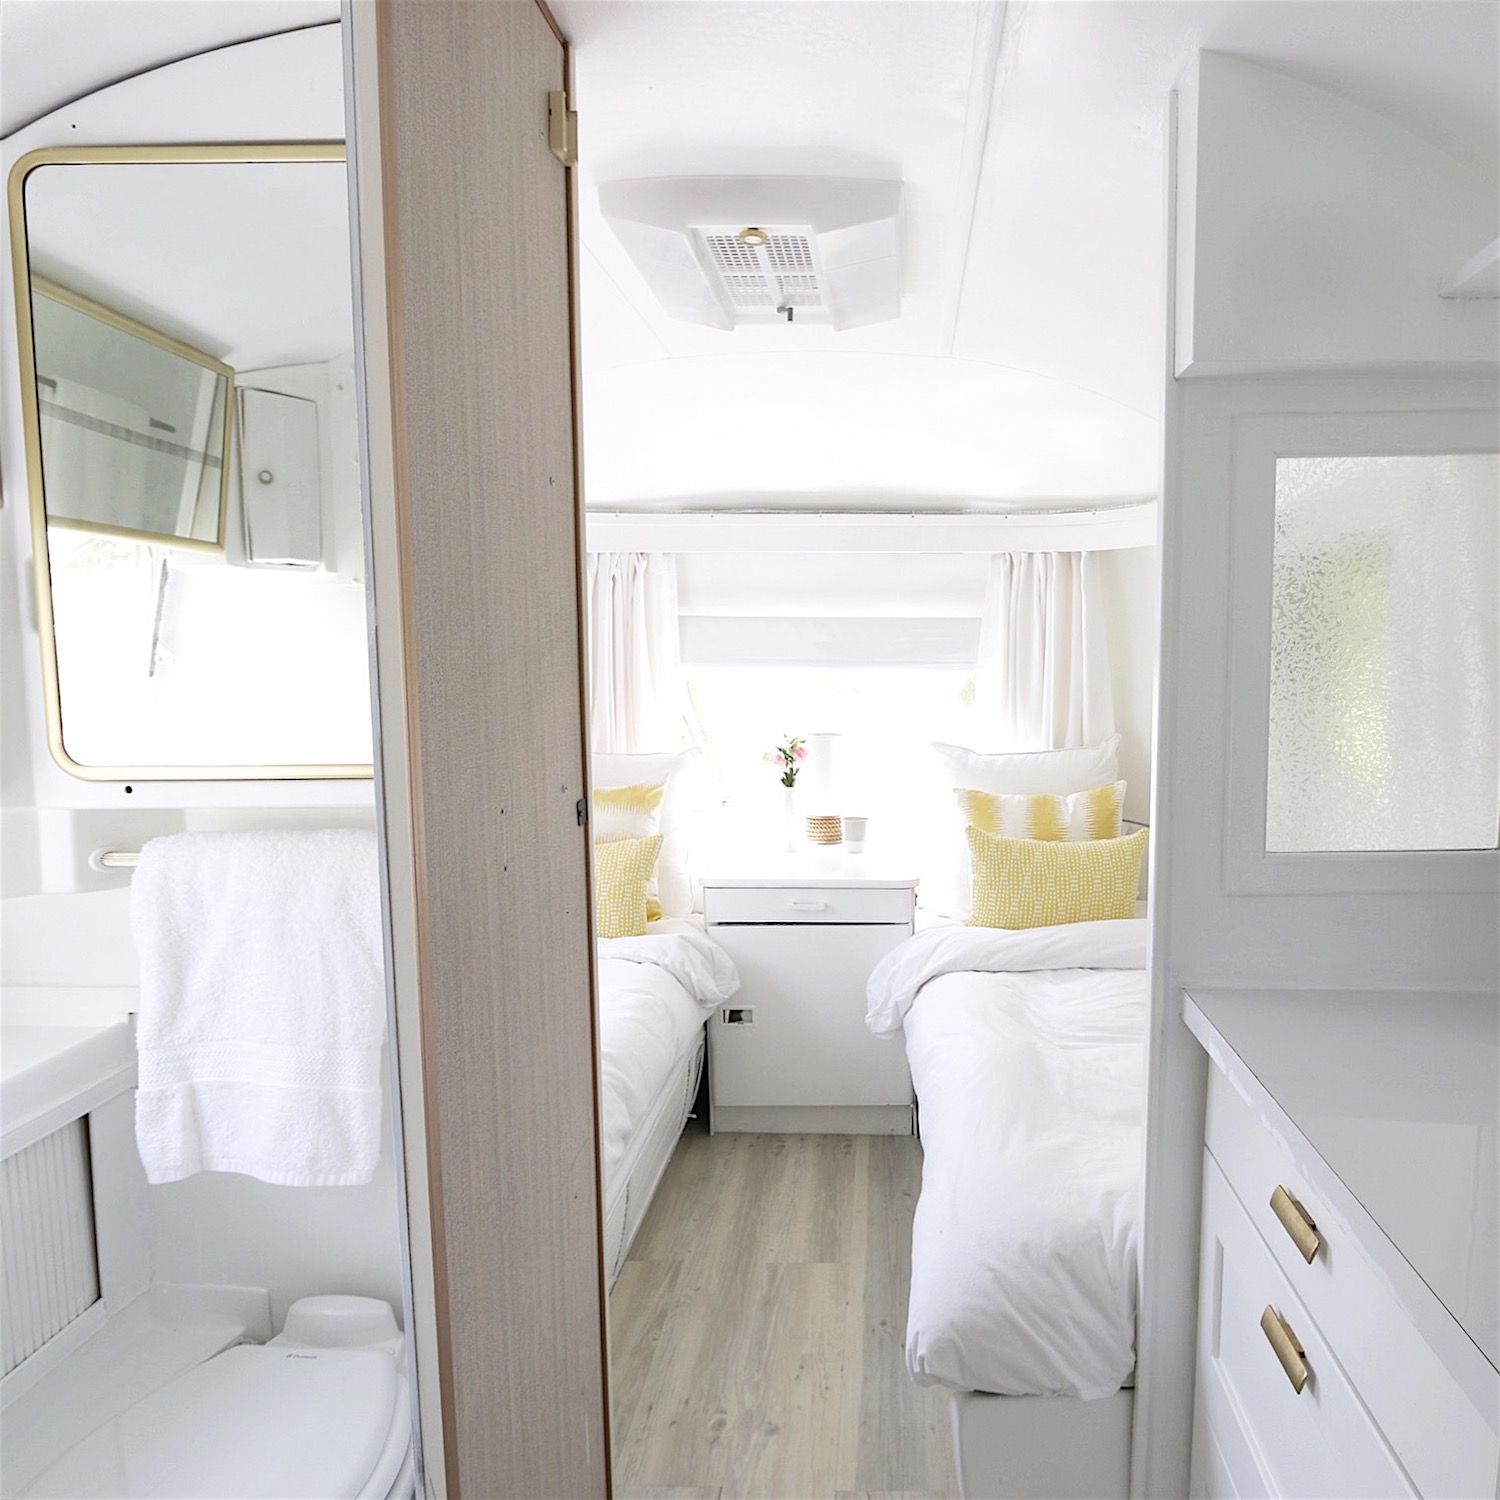 VIDEO: Before & after airstream renovation | Airstream and Airstream ...